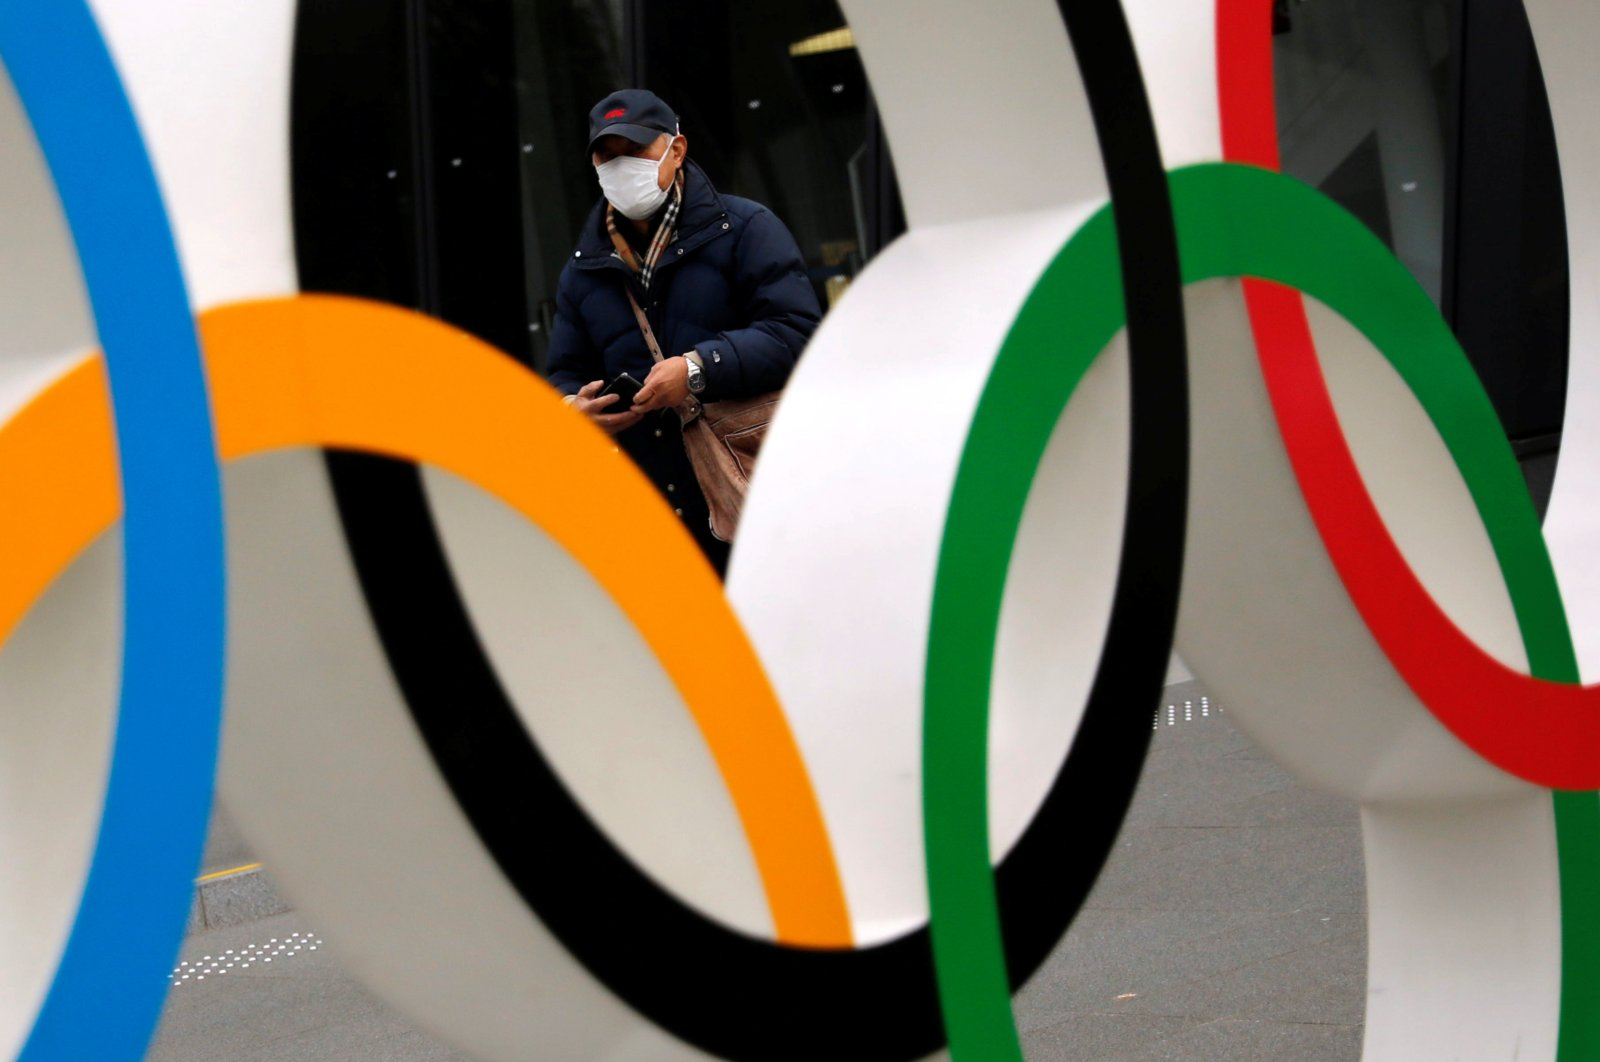 A man wearing a protective mask seen through the Olympic rings, in Tokyo, Japan, Jan. 8, 2021. (Reuters Photo)